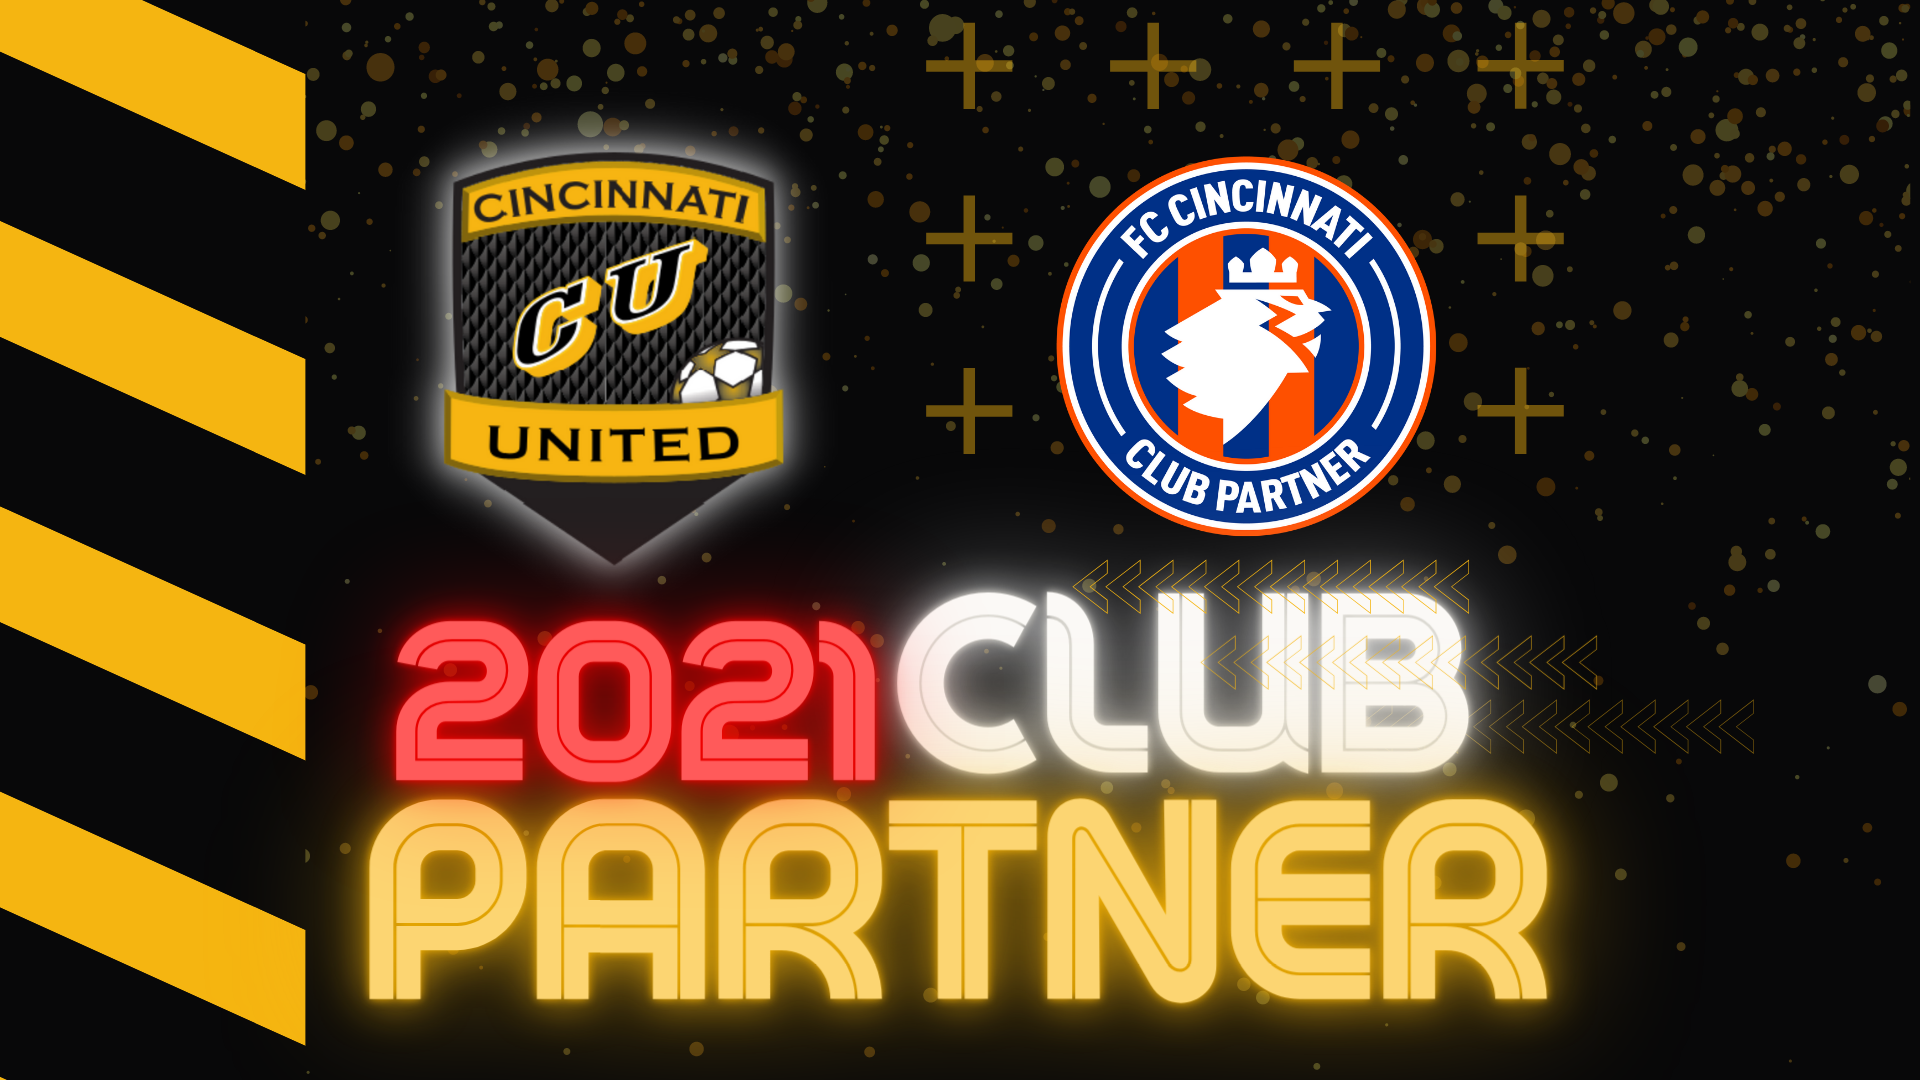 Cincinnati United Announced as FCC Club Partner